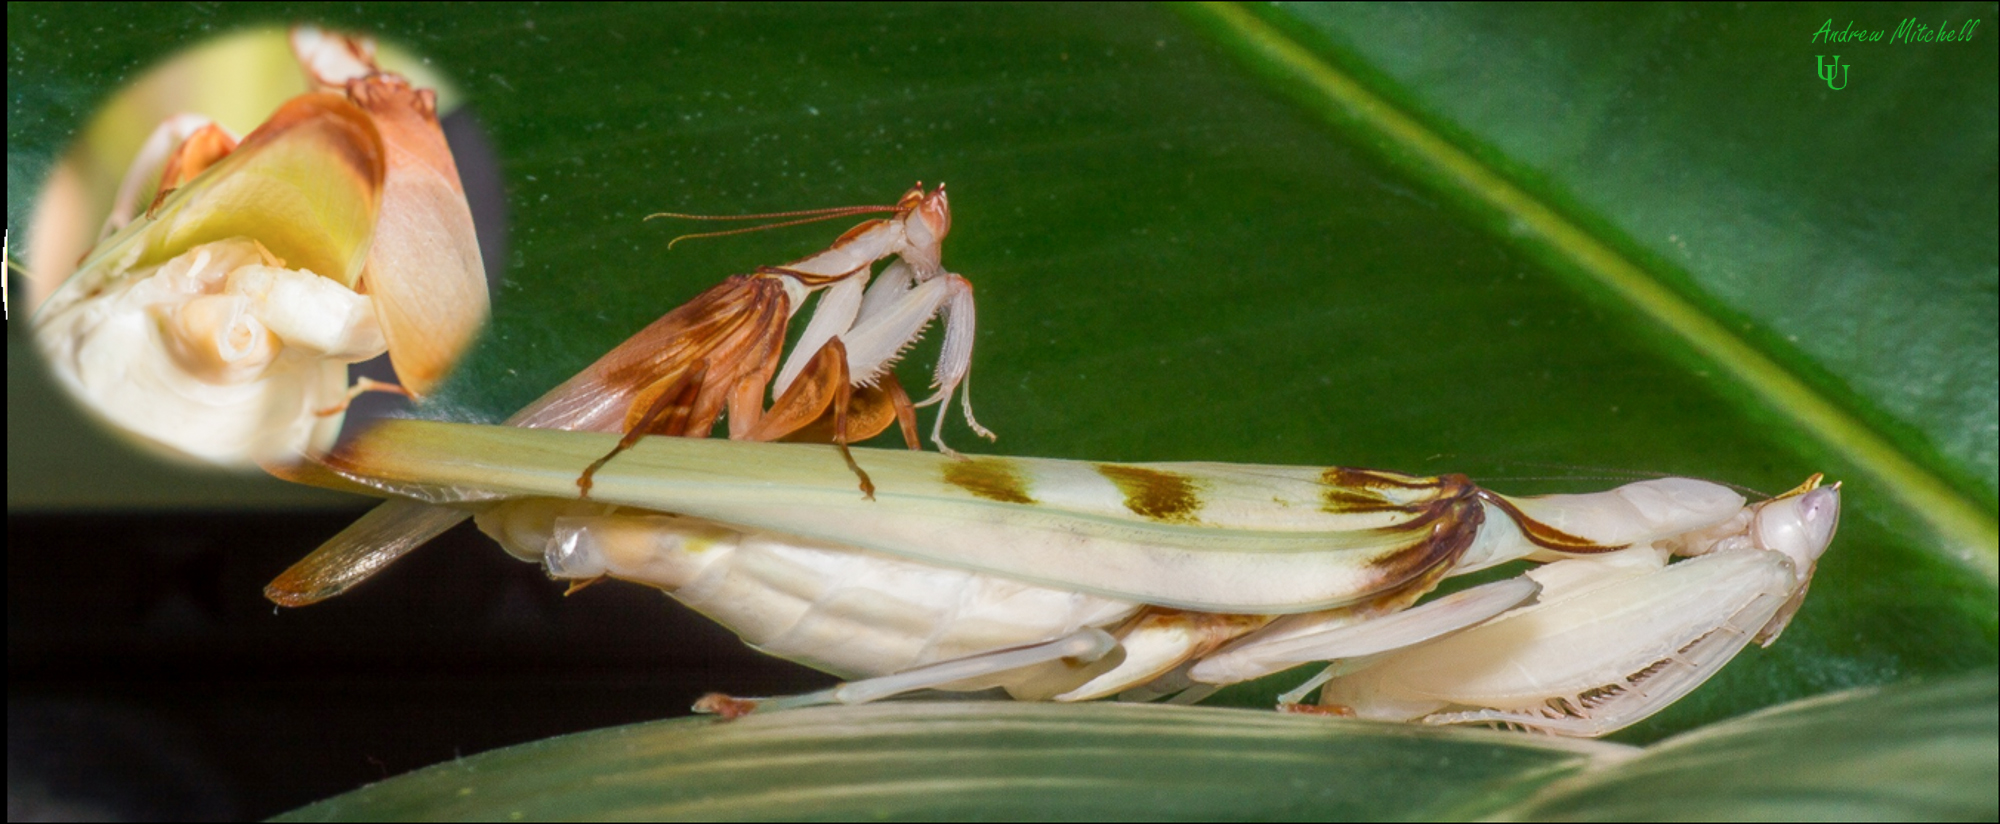 Hymenopus coronatus (Orchid Mantis) (Adult pair mating)